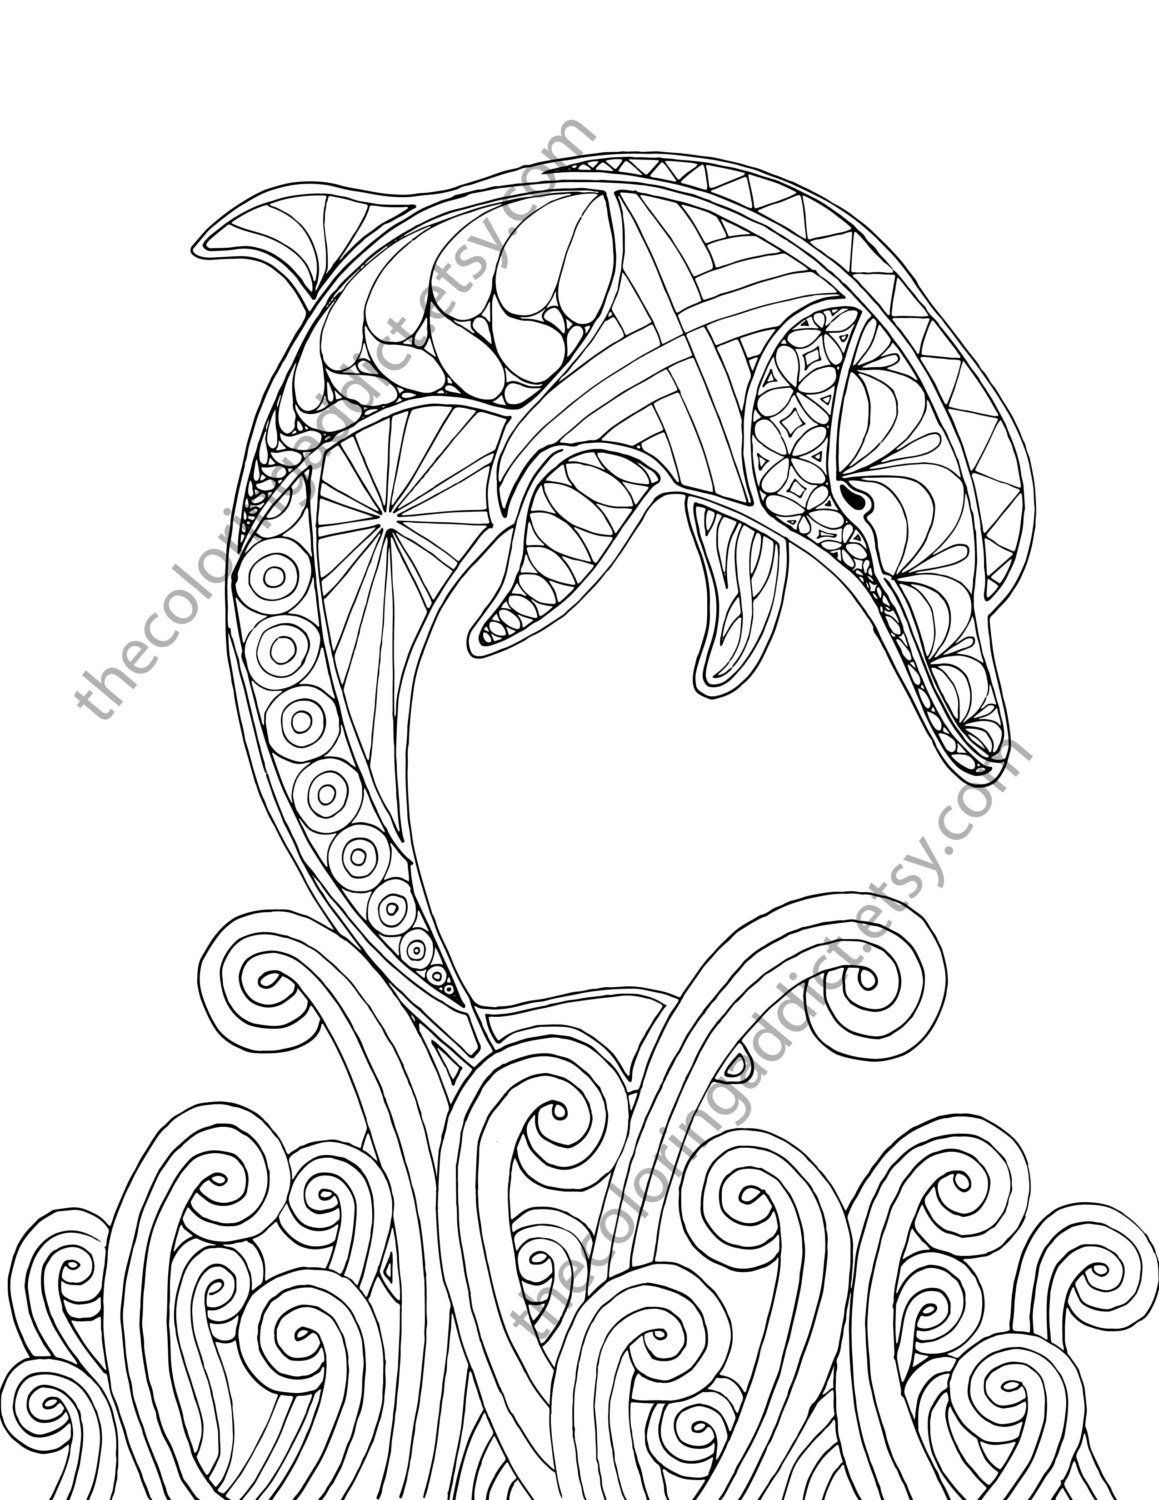 Dolphin Coloring Pages For Kids Free Printable Dolphin Coloring Pages For Adults Dolphin Coloring Pages Shark Coloring Pages Mandala Coloring Pages